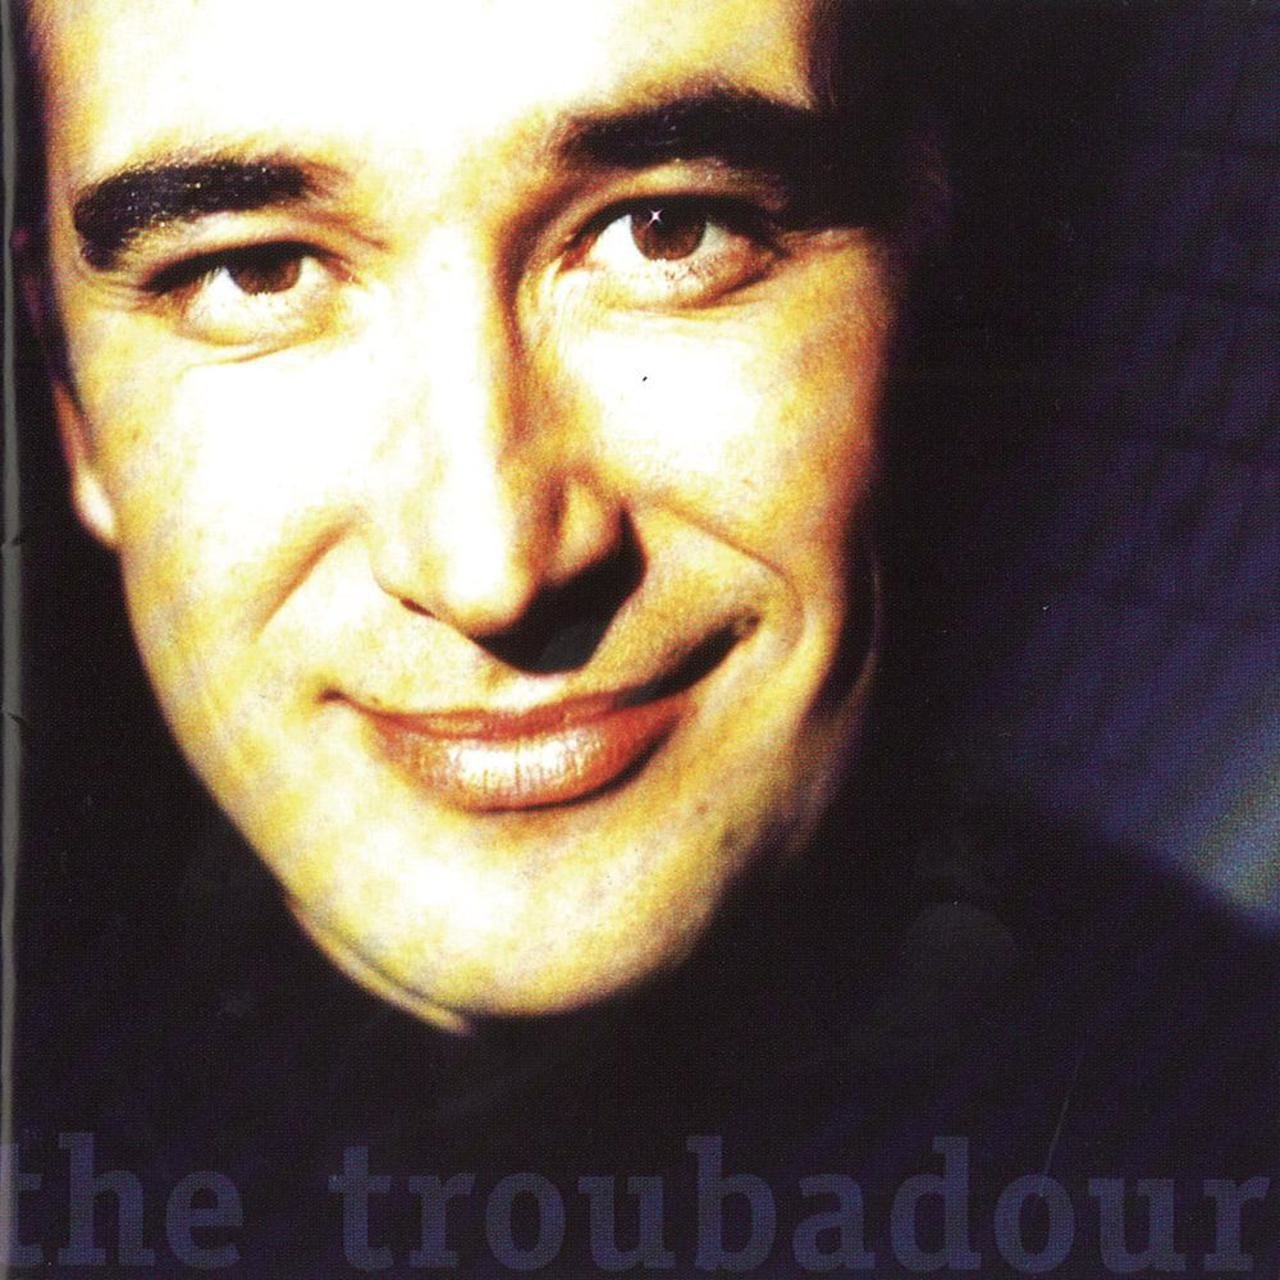 The Troubadour